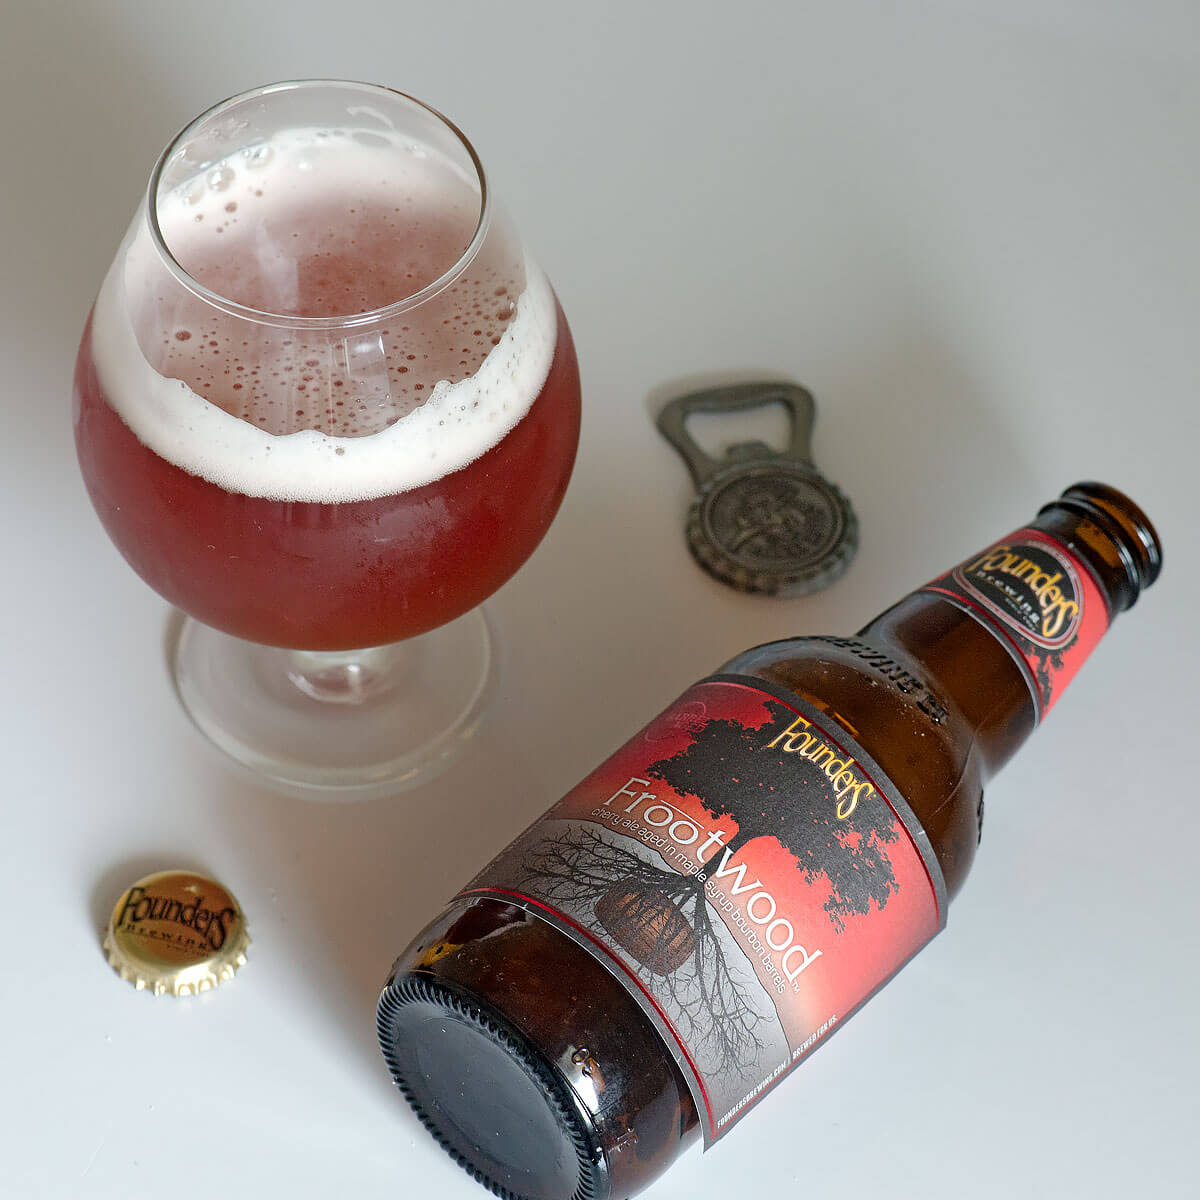 Frootwood, a Fruit Beer by Founders Brewing Co.